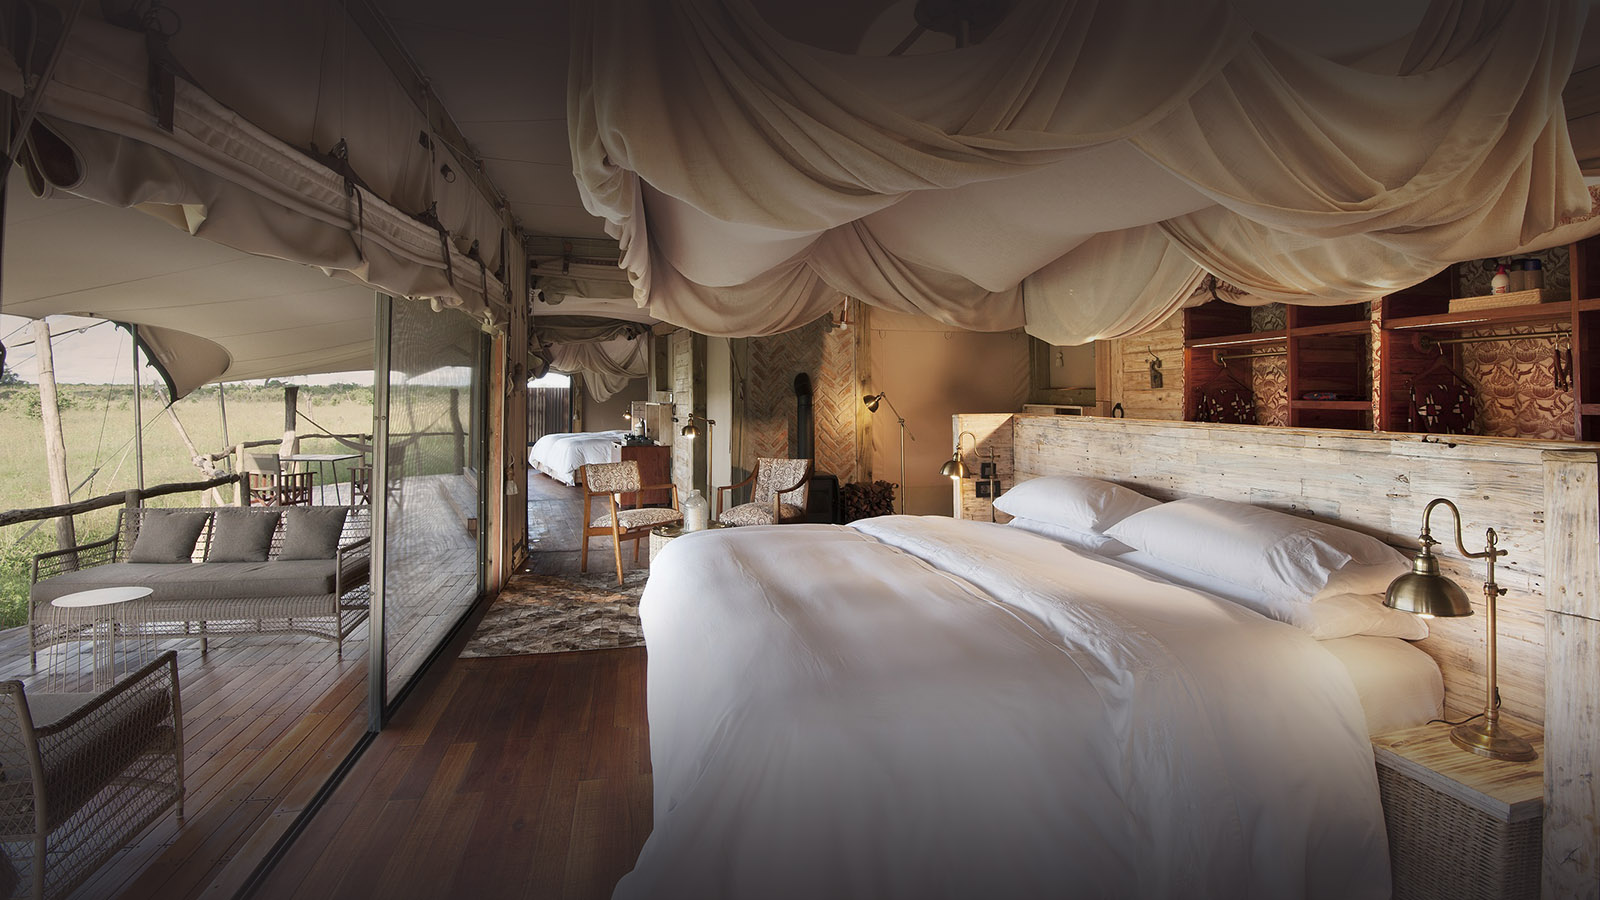 somalisa acacia zimbabwe-lodges-zambia-in-style-safaris-wildlife-africa-hwange-national-park-suite